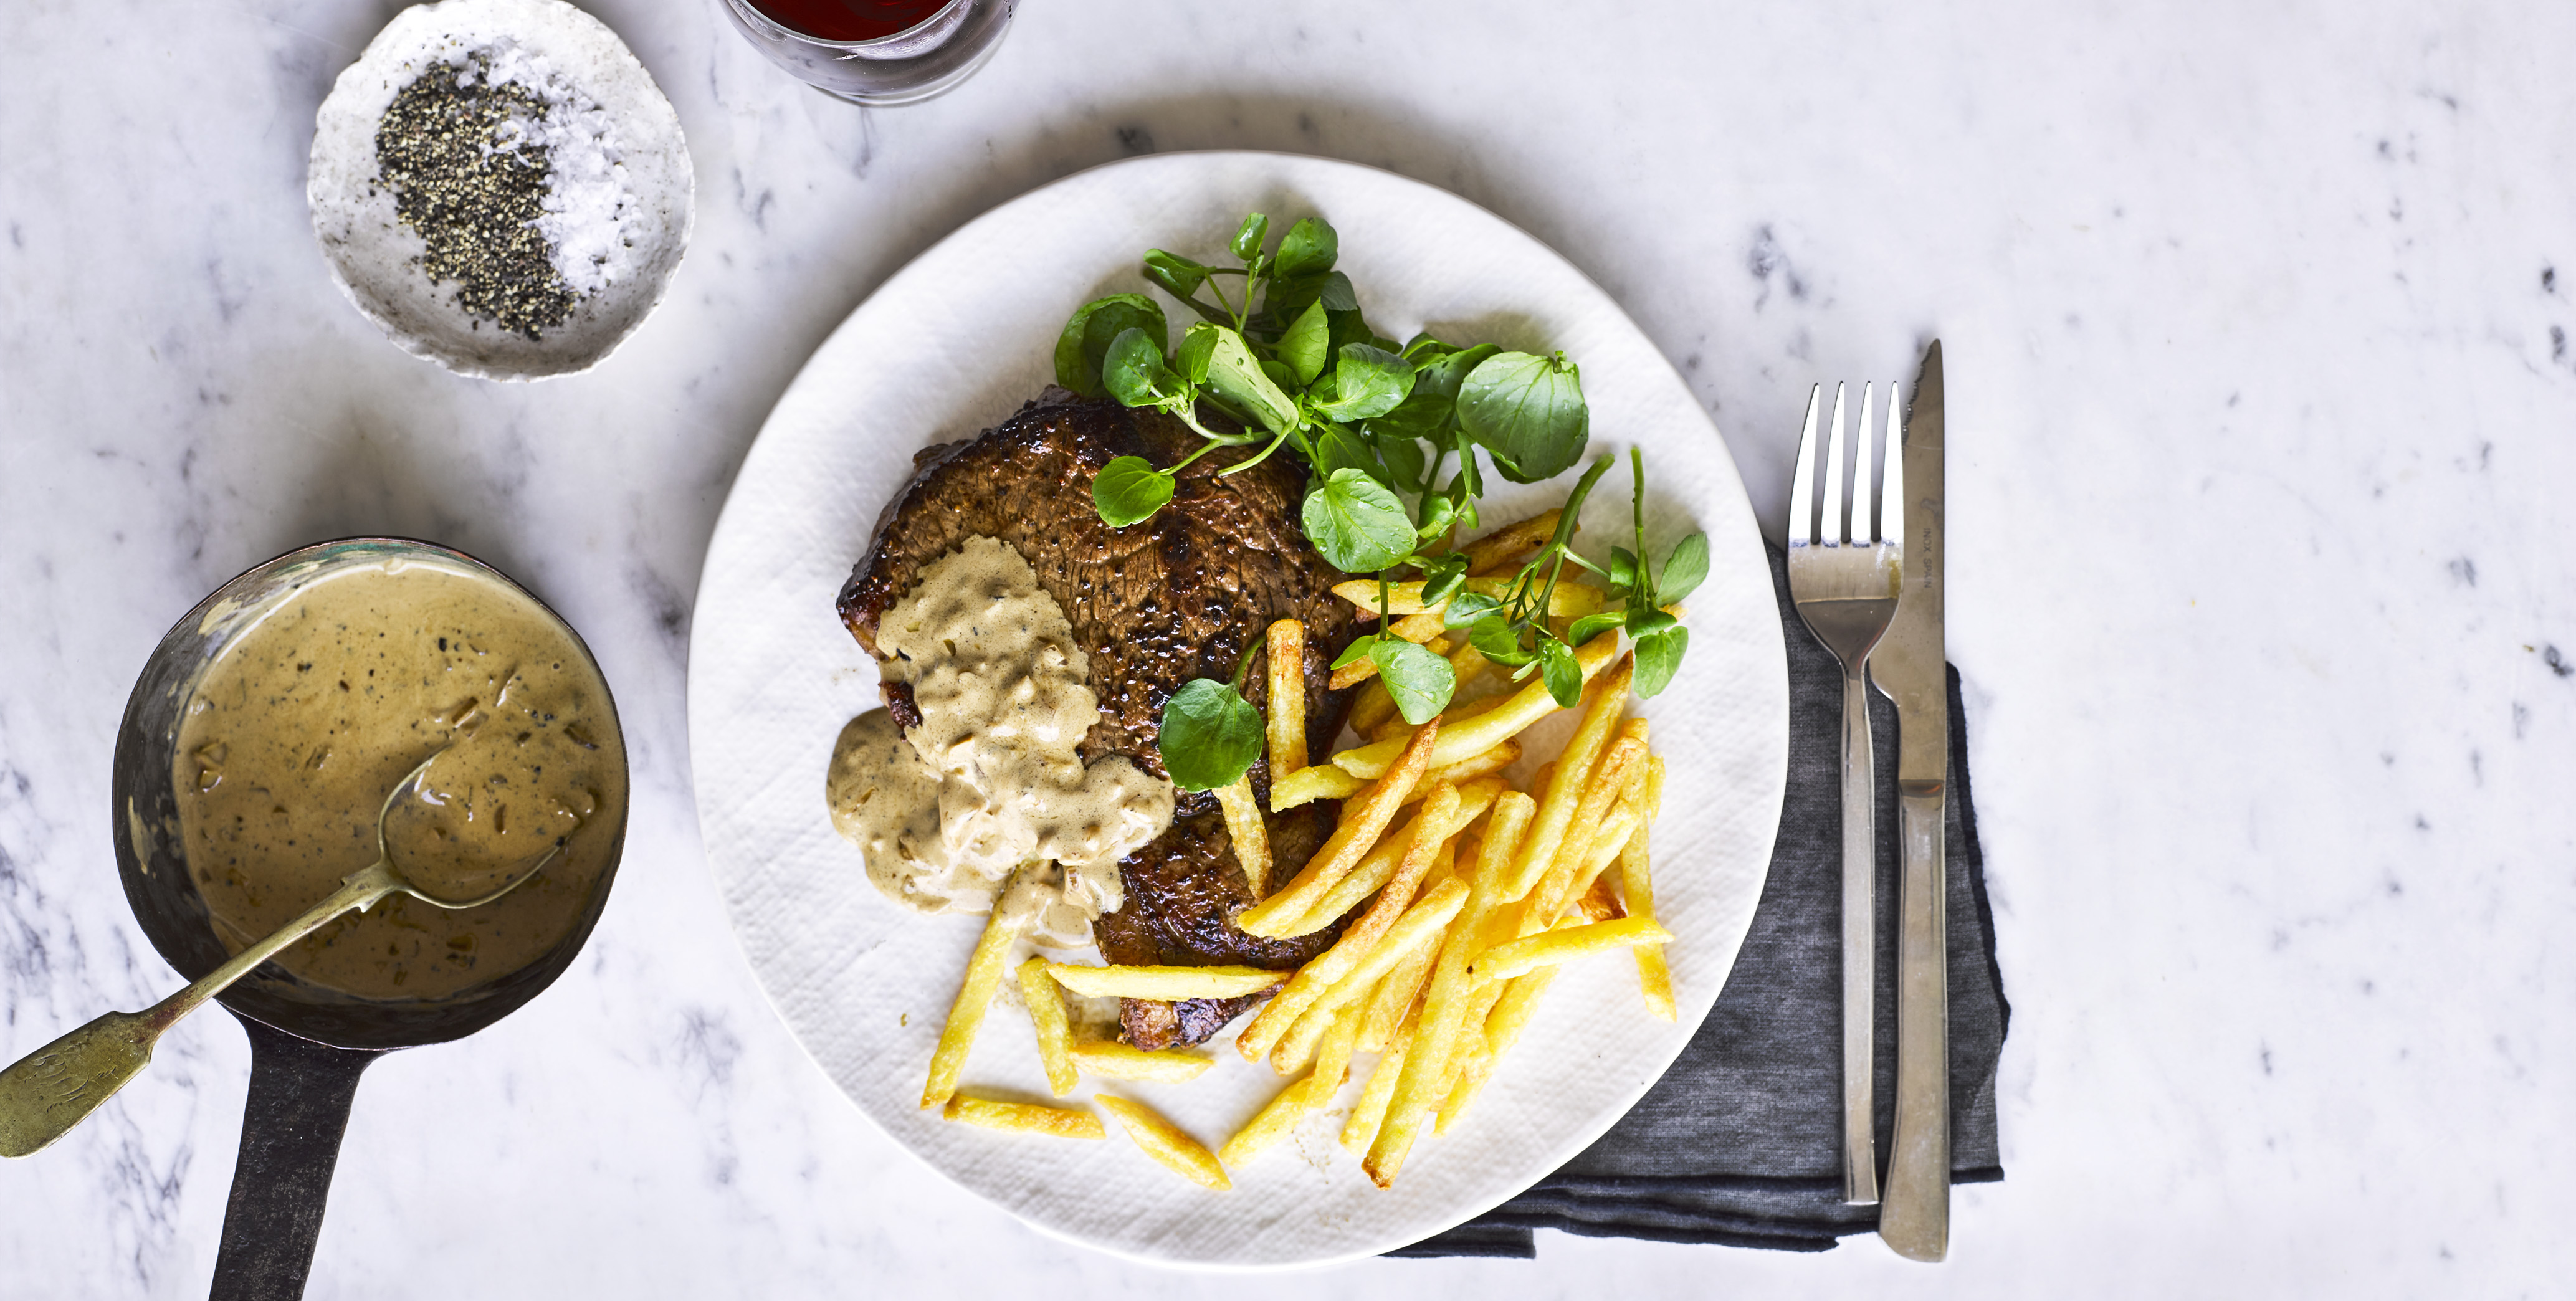 steak with creamy peppercorn steak